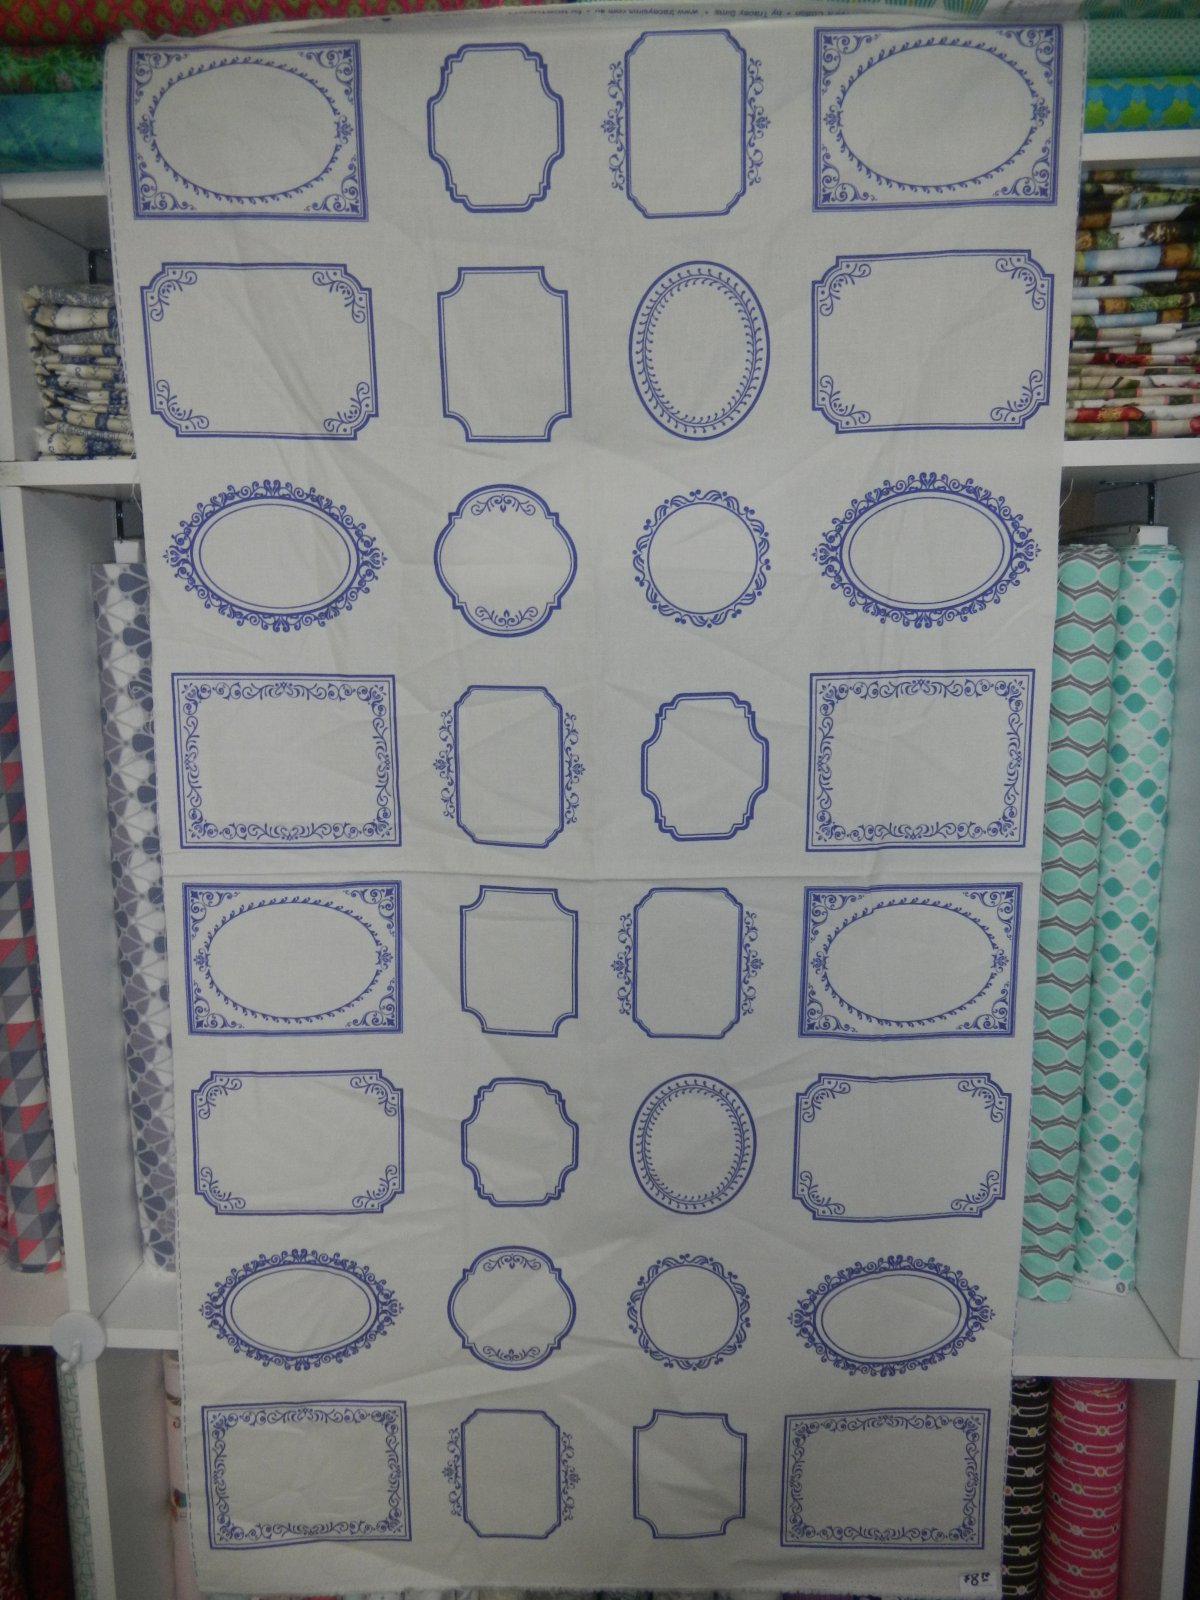 Panel#121 - Panel of Quilt Labels